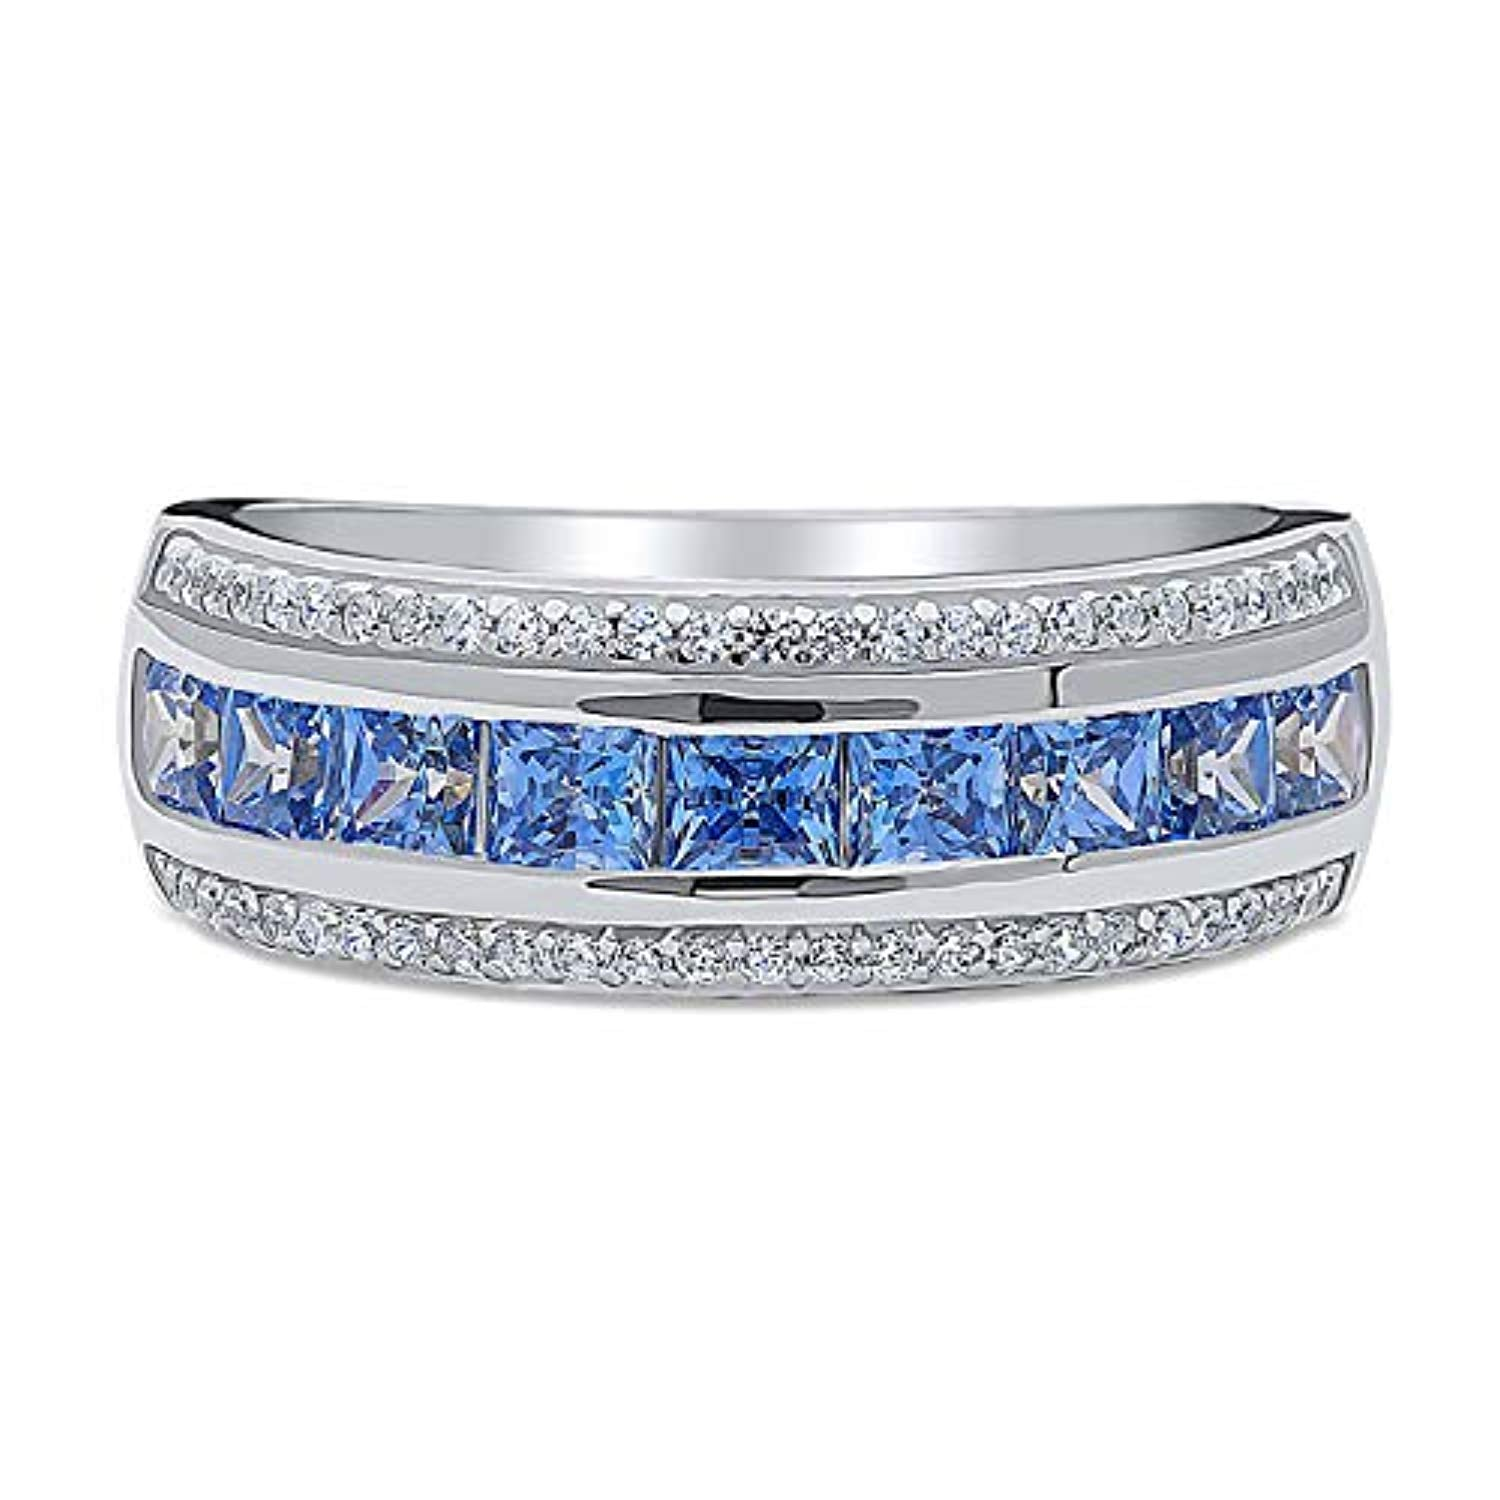 Rhodium Plated Sterling Silver Anniversary Wedding Half Eternity Band Ring Made with Swarovski Zirconia Blue Channel Set